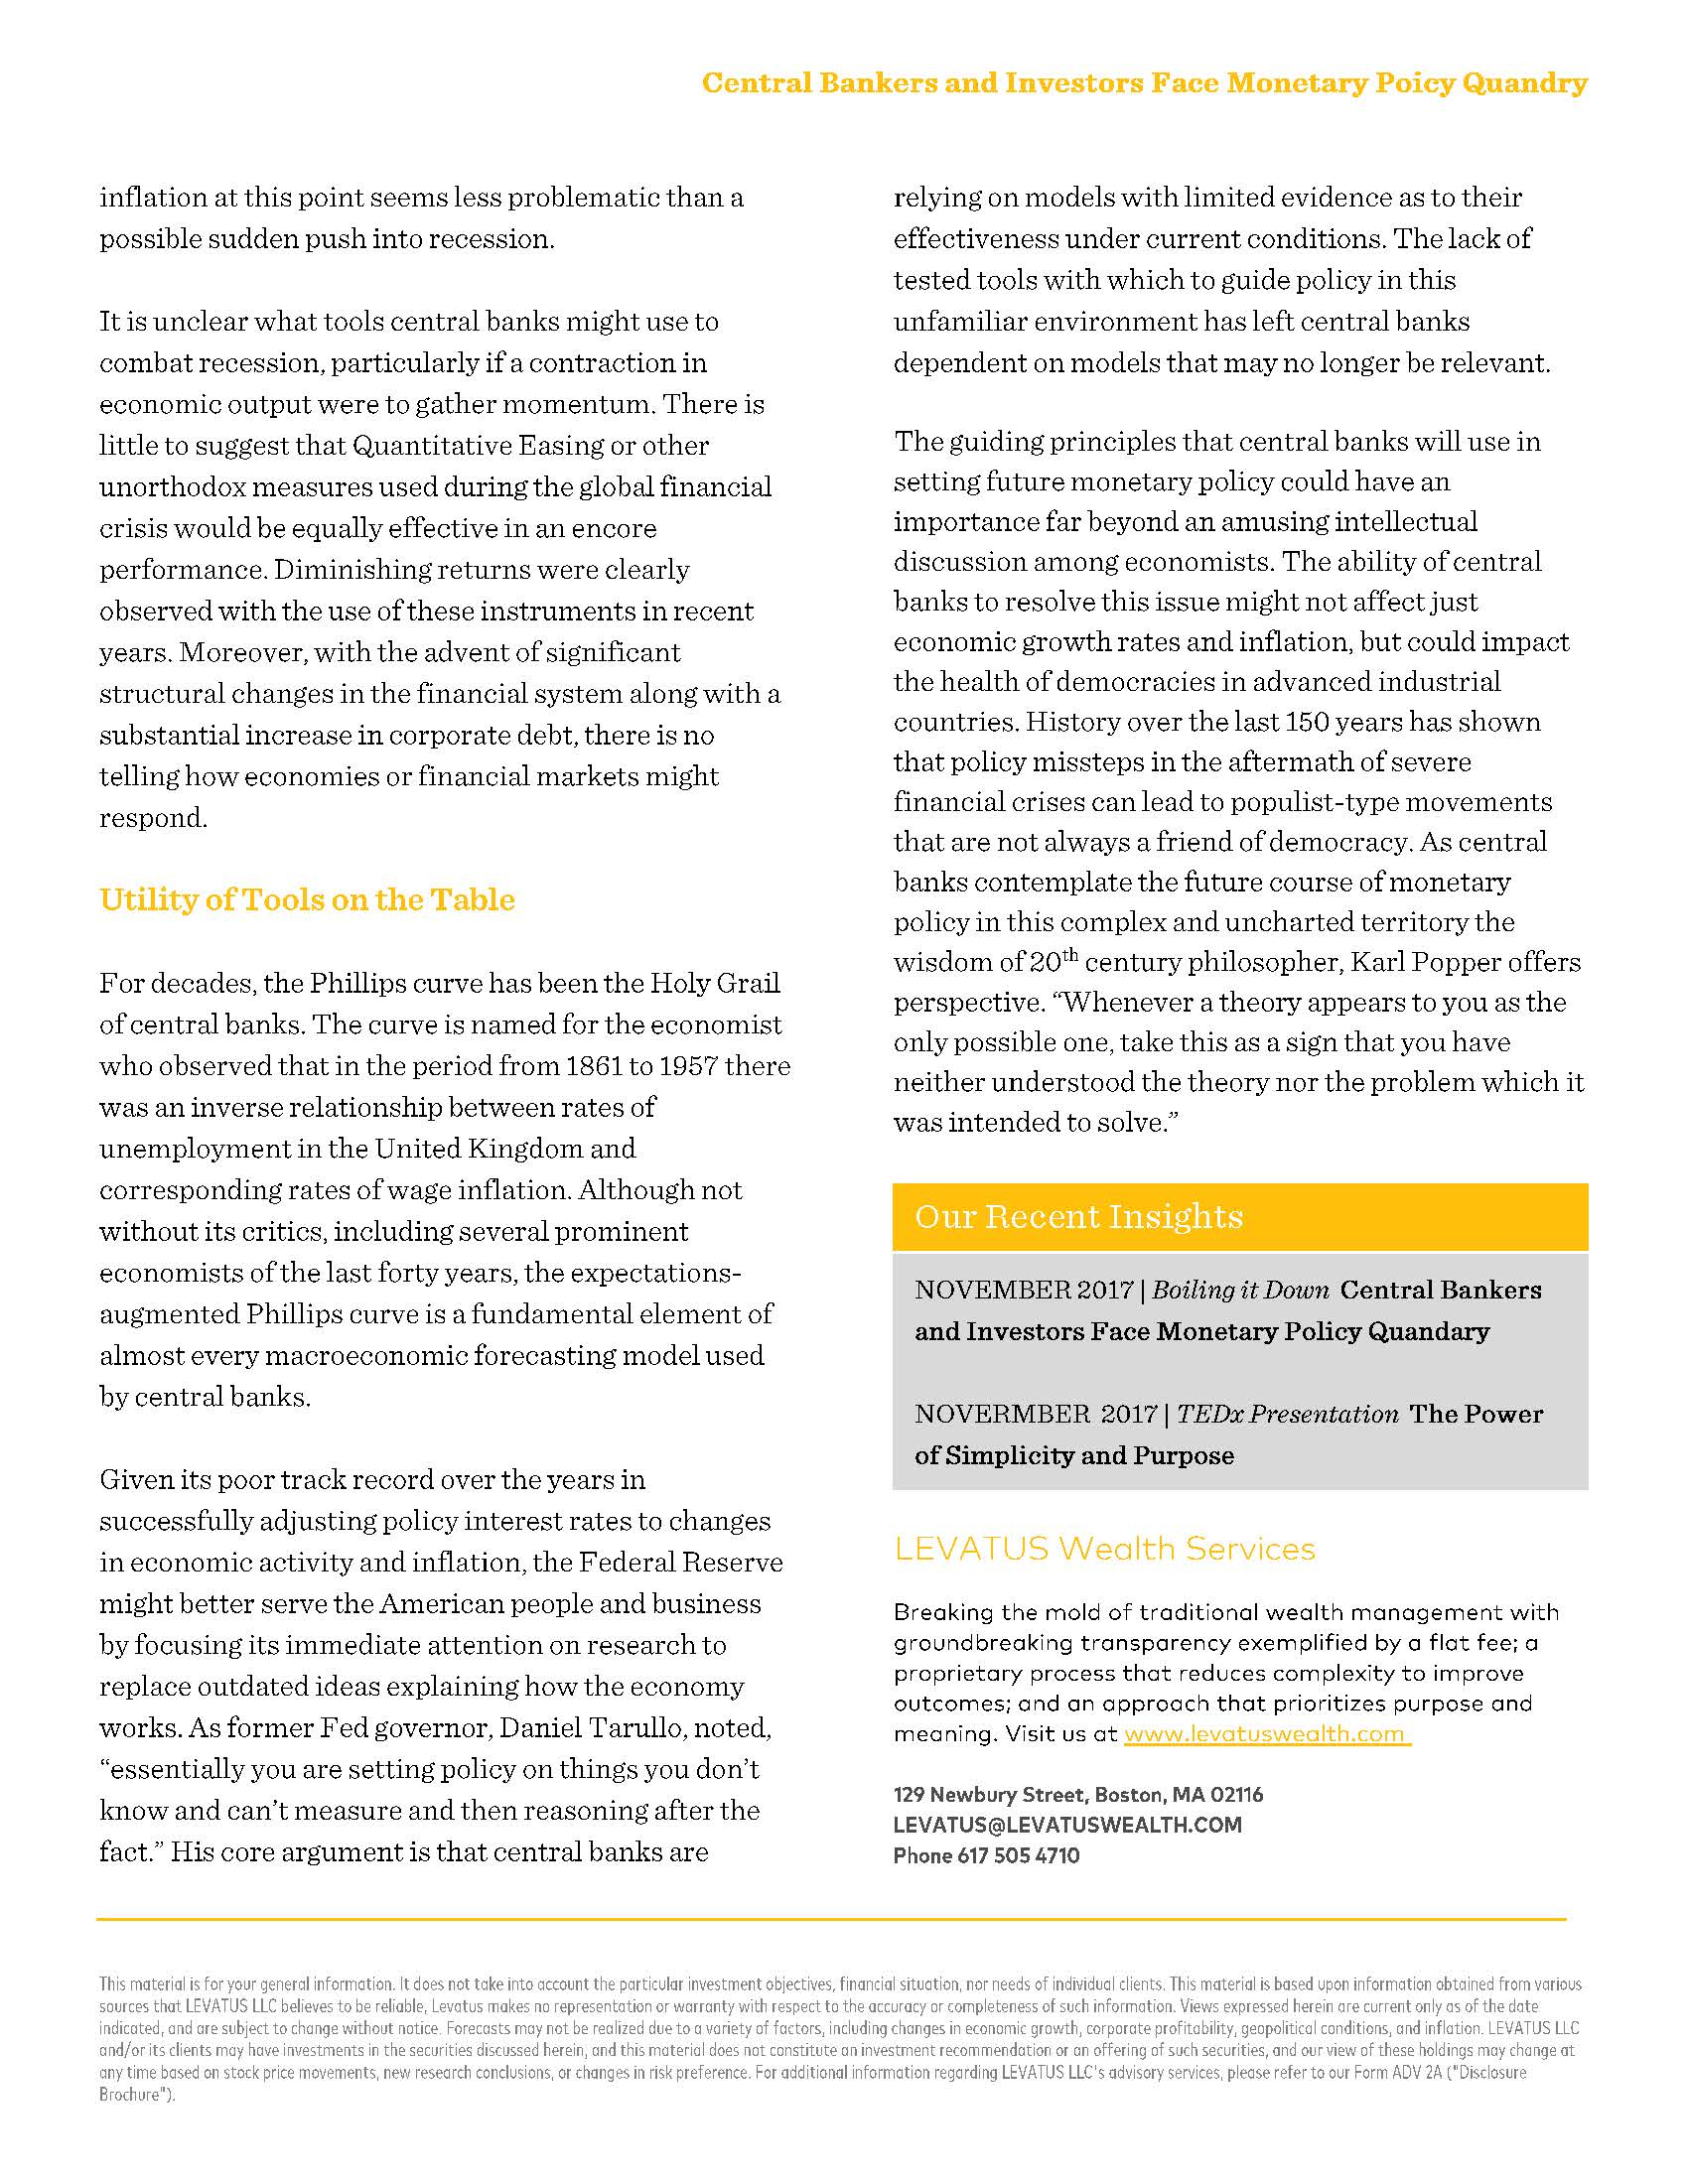 Insight Note - Central Bank Quandry PDF_Page_2.jpg